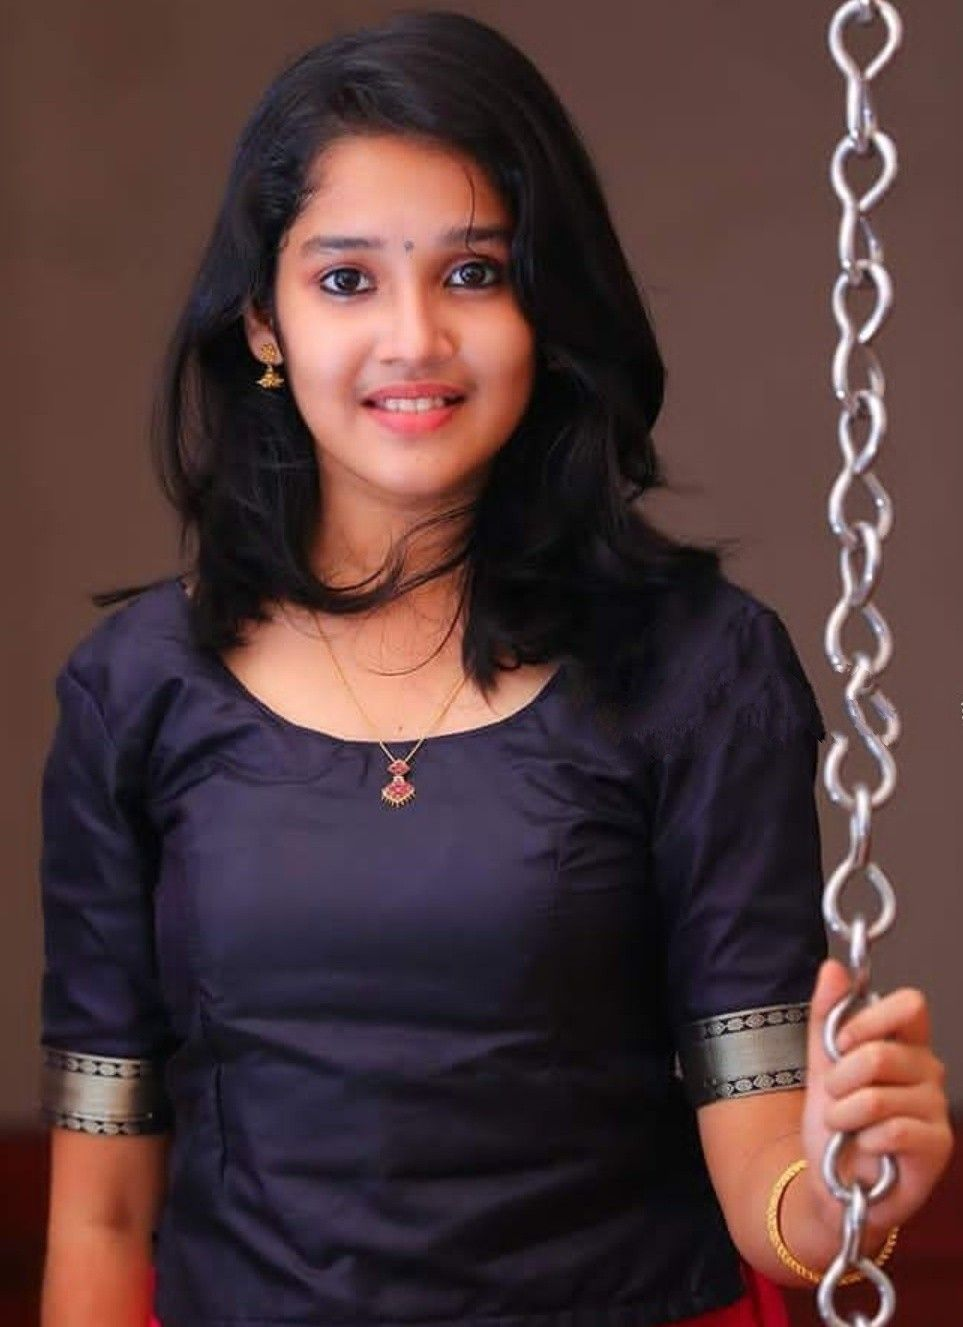 Cute South Indian Teenager World Of Beautiful People Lovely